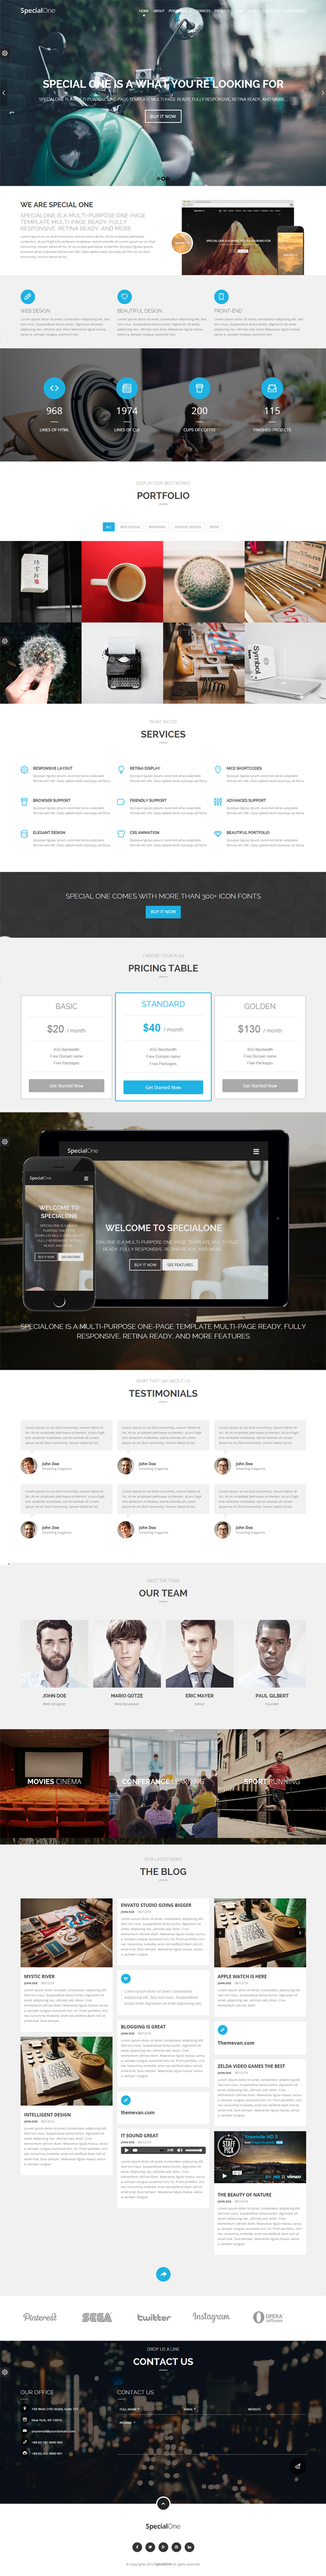 Fresh Responsive HTML5 Web Templates | Design | Graphic Design Junction